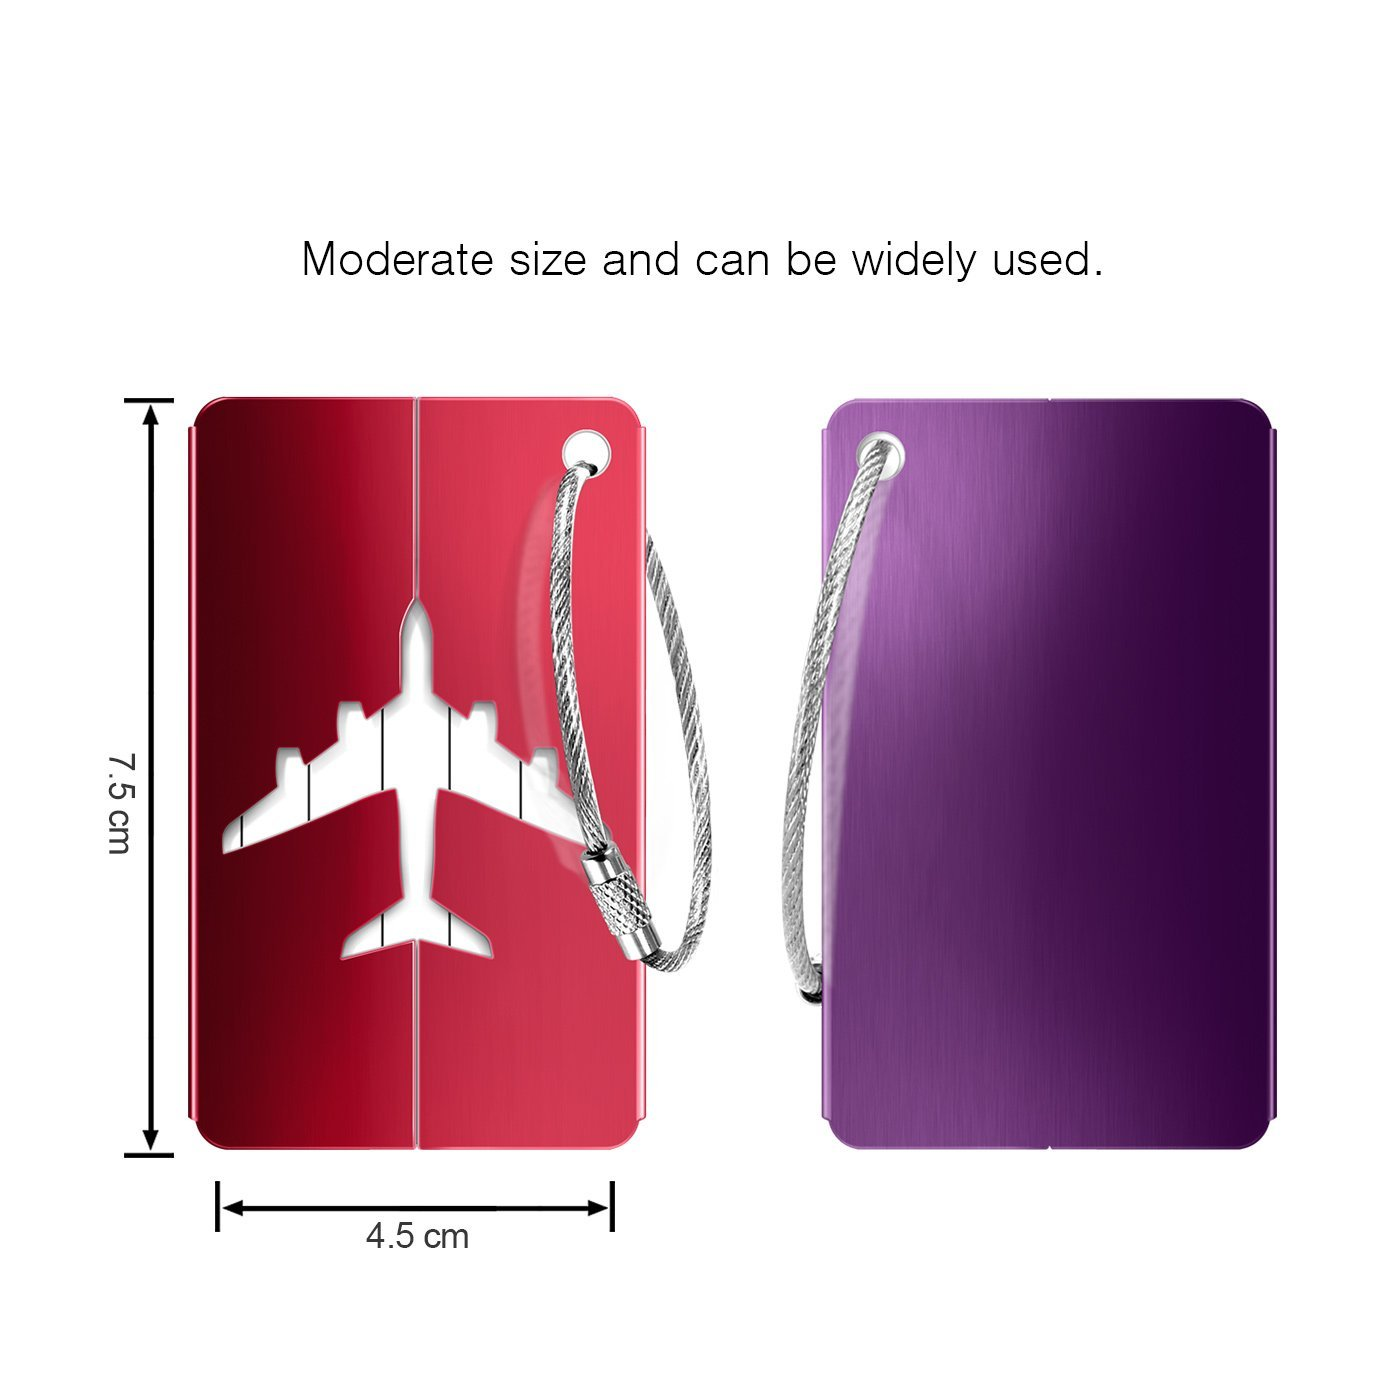 Luggage Tags 10pcs,Baggage Tags Tag Labels with Business Card Holder(10 colors) by Yosemy (Image #5)